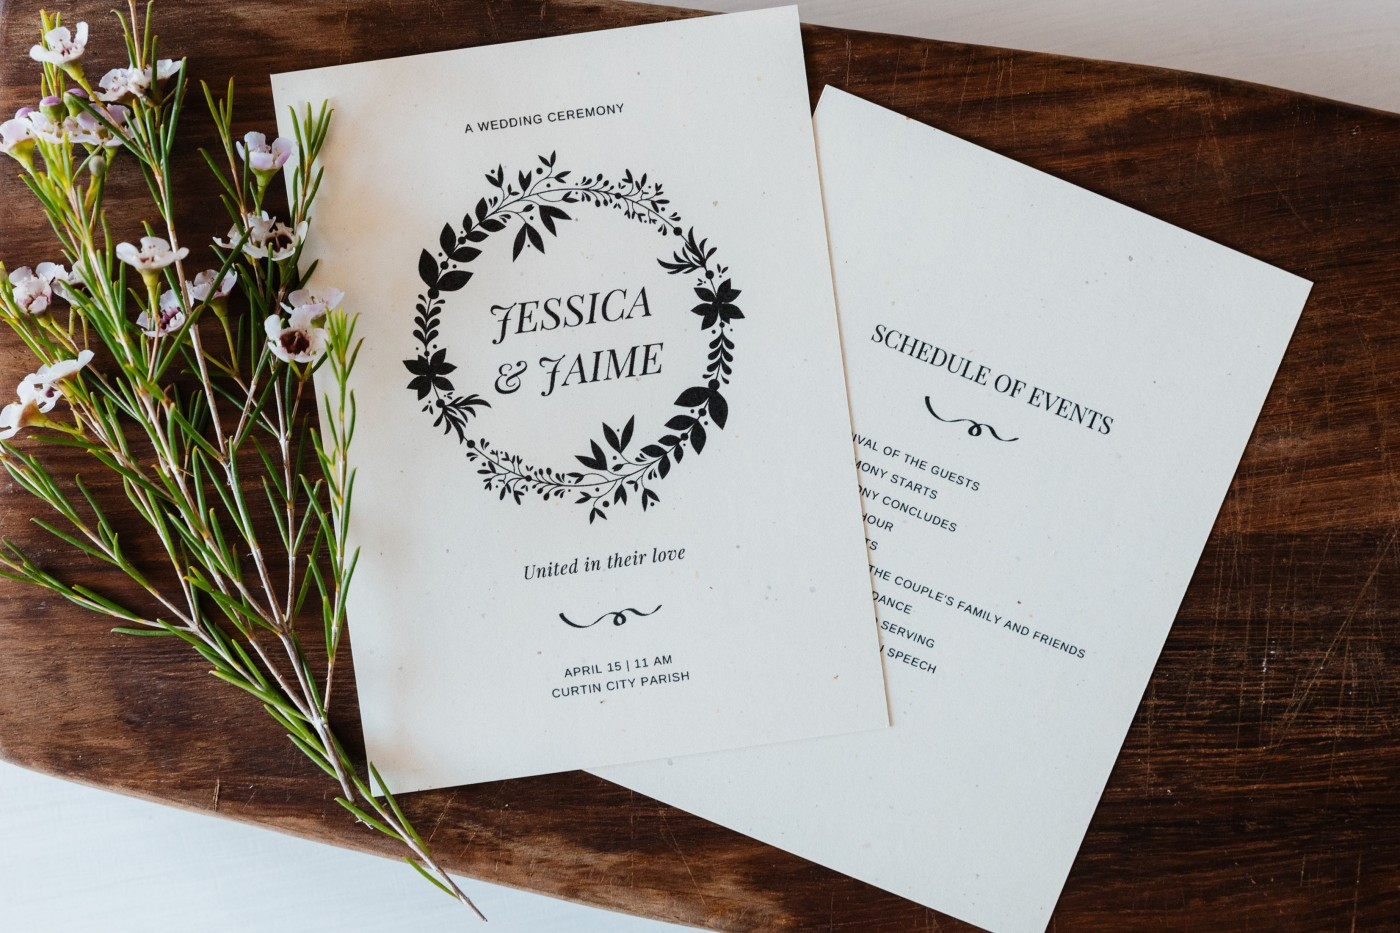 005 Top Wedding Order Of Service Template Free Inspiration  Front Cover Download Church1400